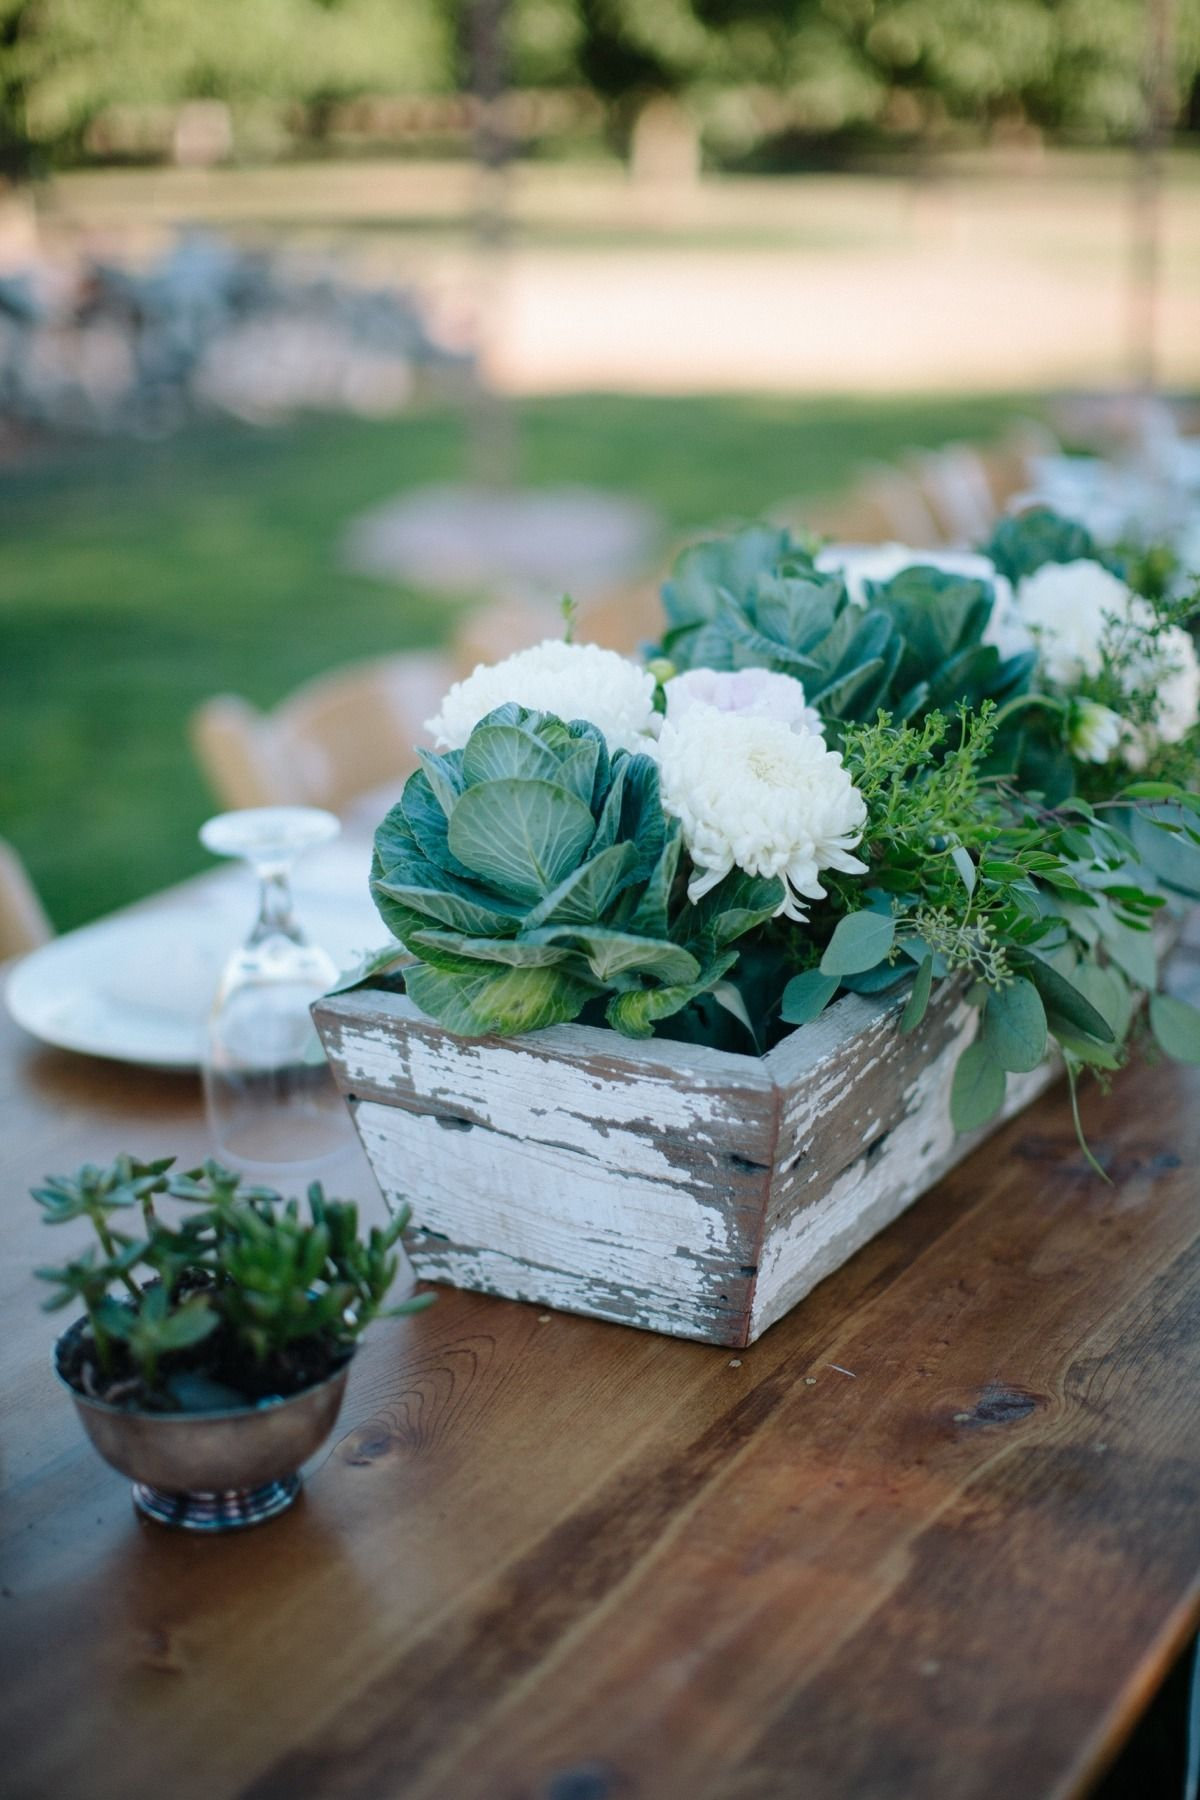 #rustic, #cabbage, #centerpiece Photography: Abi Q Photography - www.